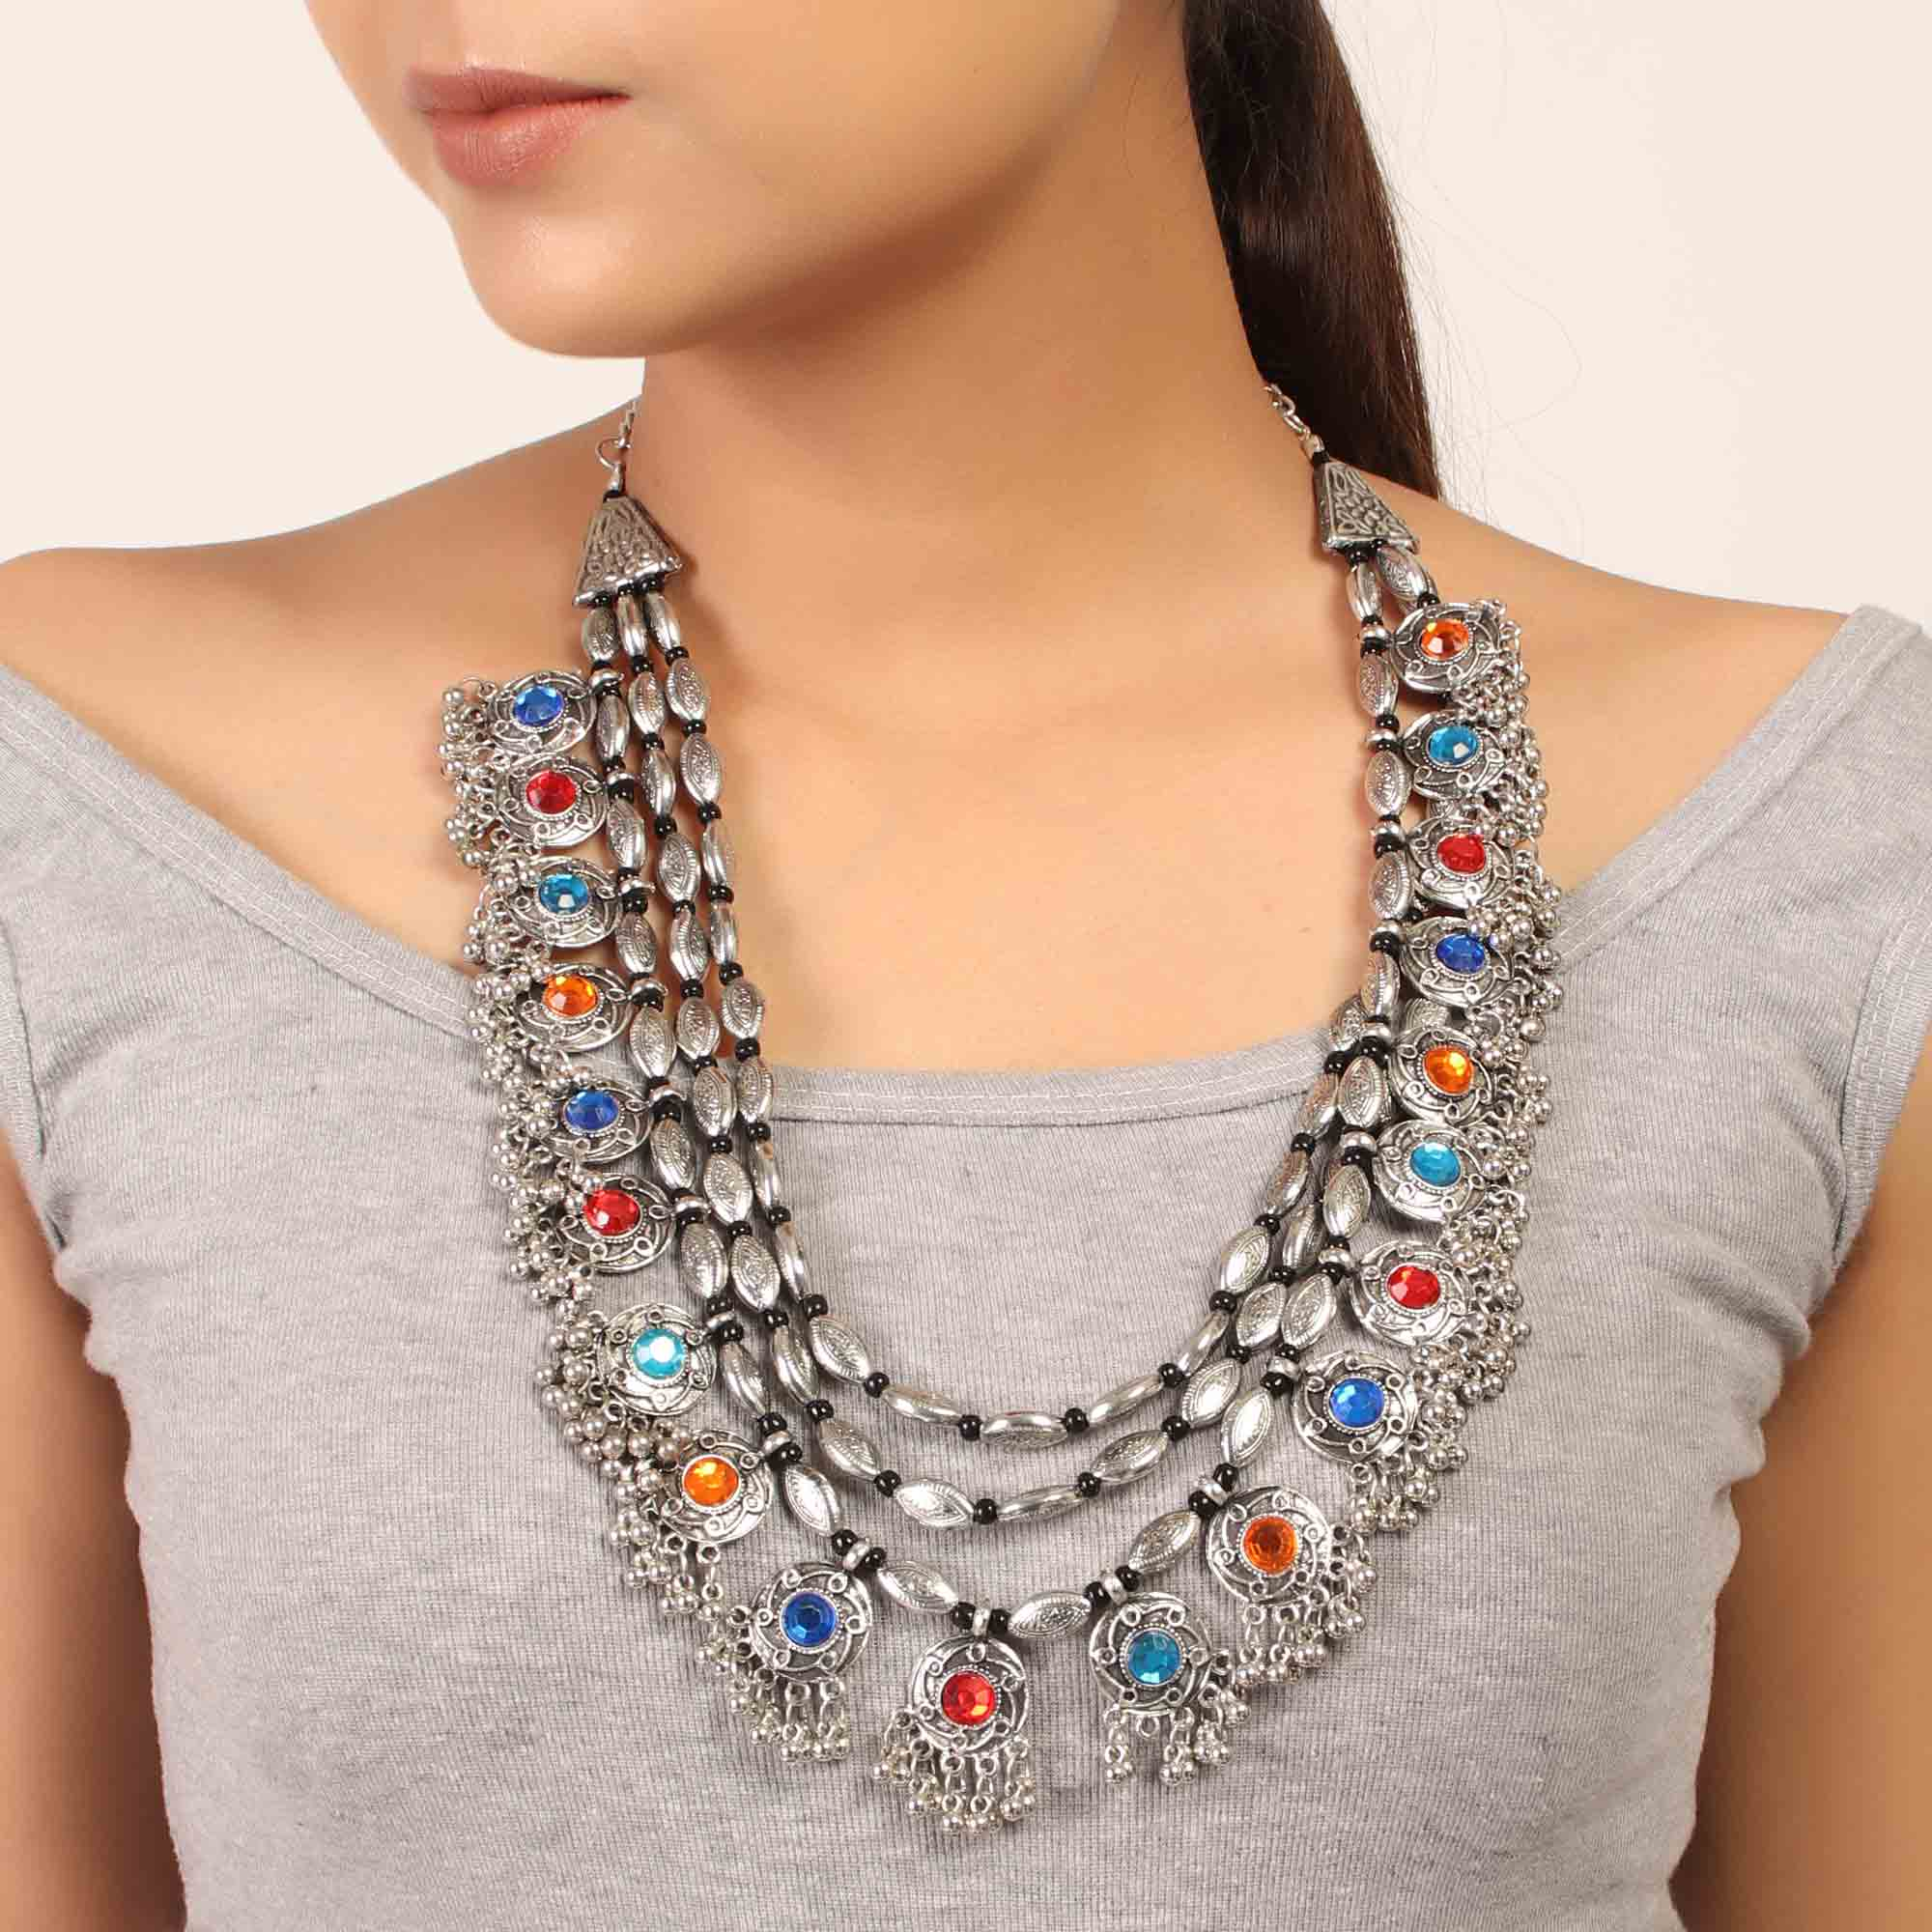 Necklace,Rajwada Necklace in Silver hue with Multicolored Stones - Cippele Multi Store